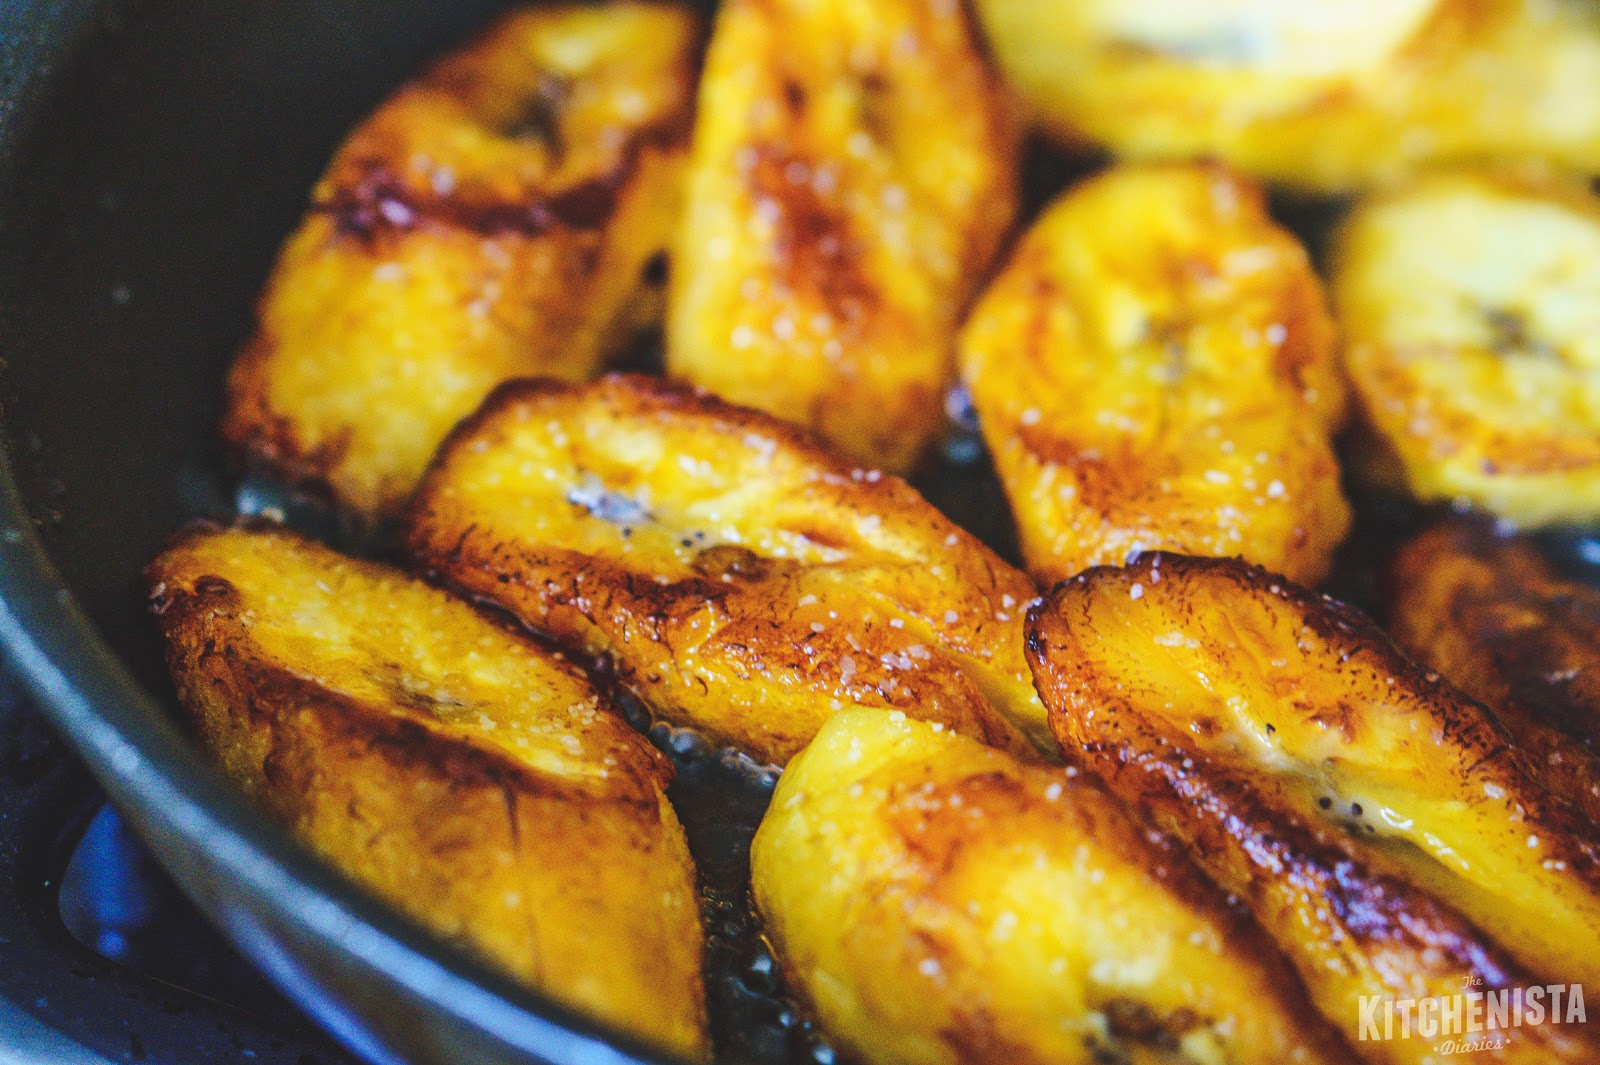 Pan Fried Plantains With Sea Salt The Kitchenista Diaries